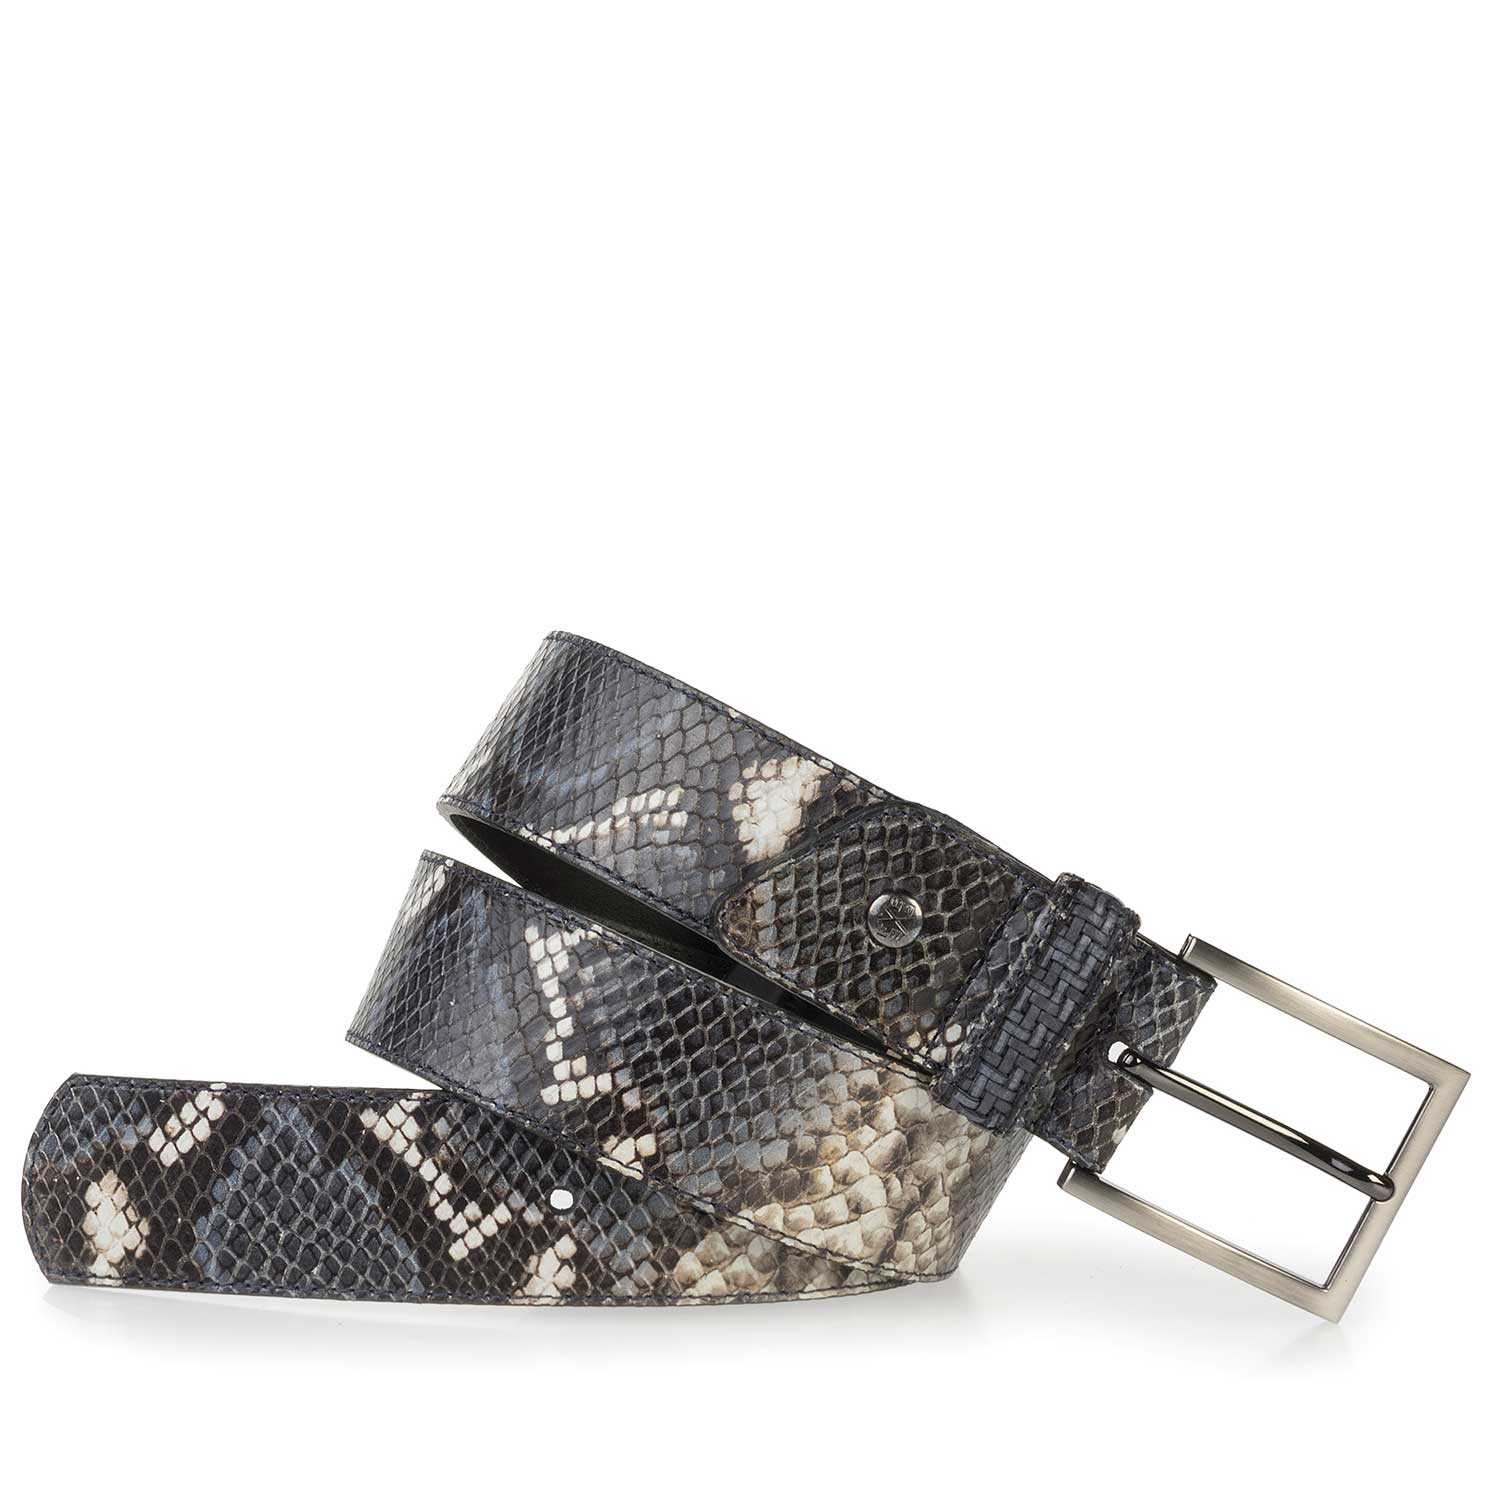 75179/02 - Blue calf's leather belt with a snake print